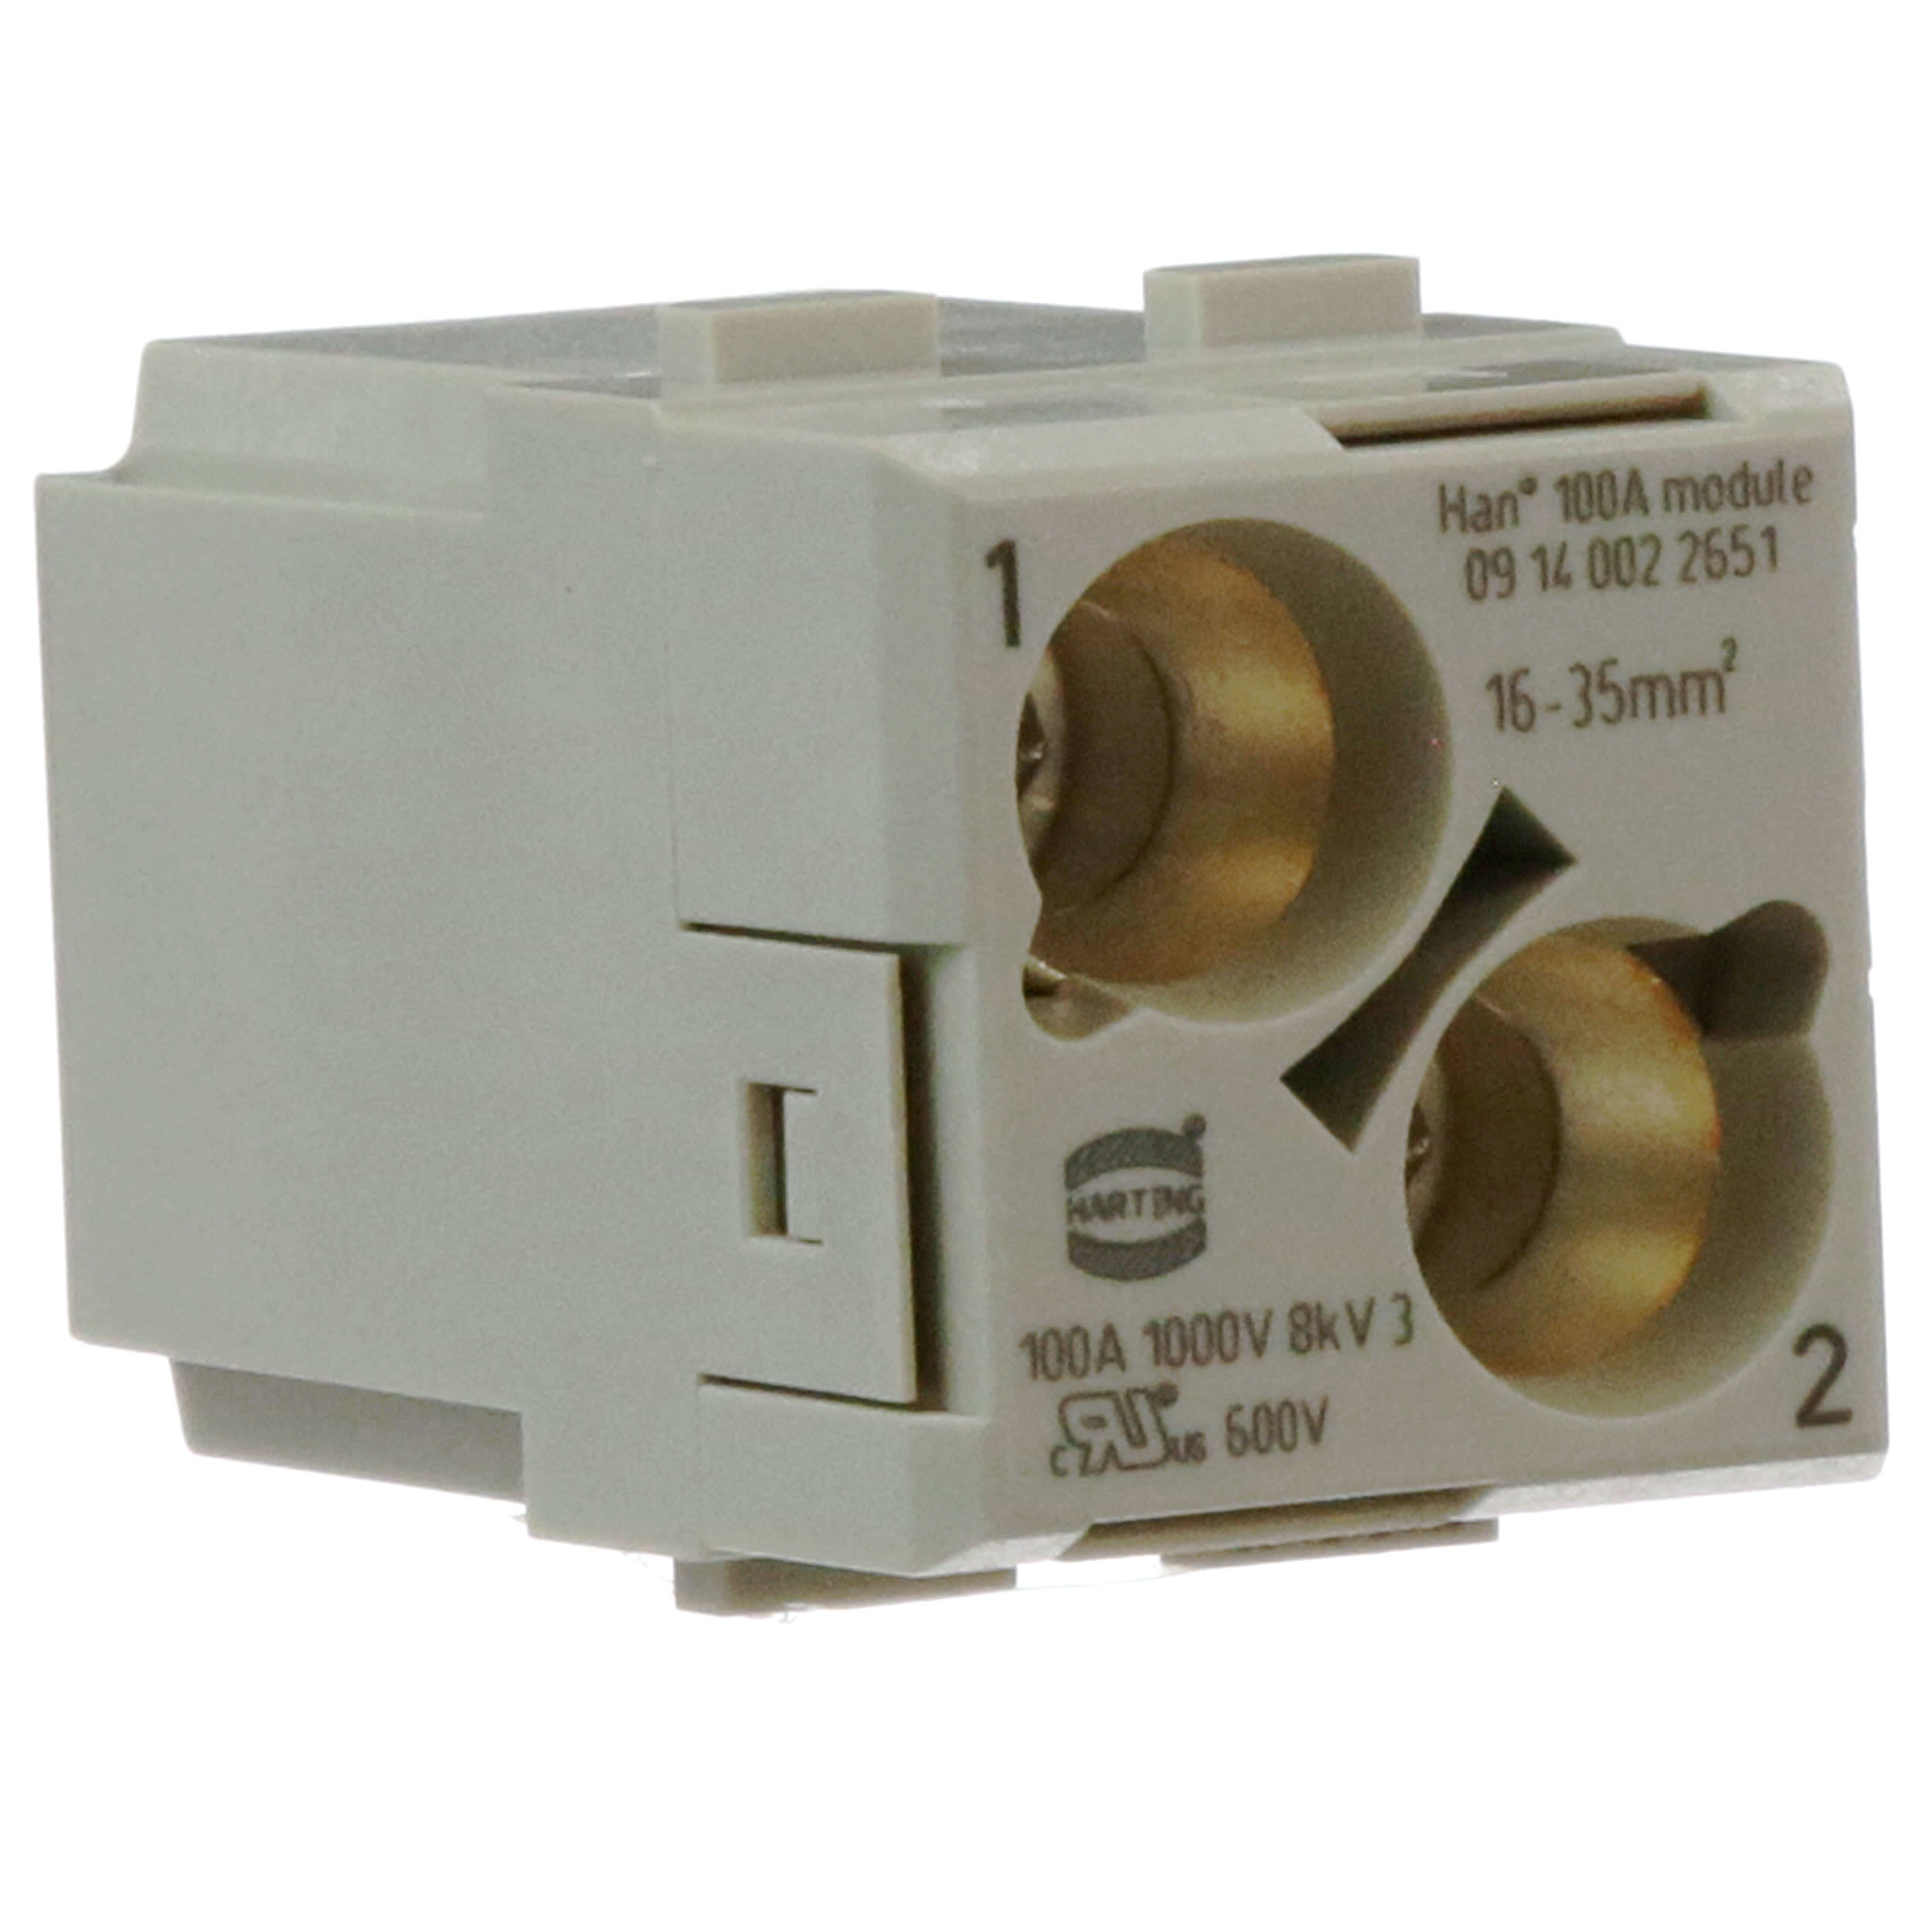 Heavy Duty Connector Han-Modular E Series Pack of 5 Less Contacts Protected Pin Module 09140063041 6 Contacts, Insert